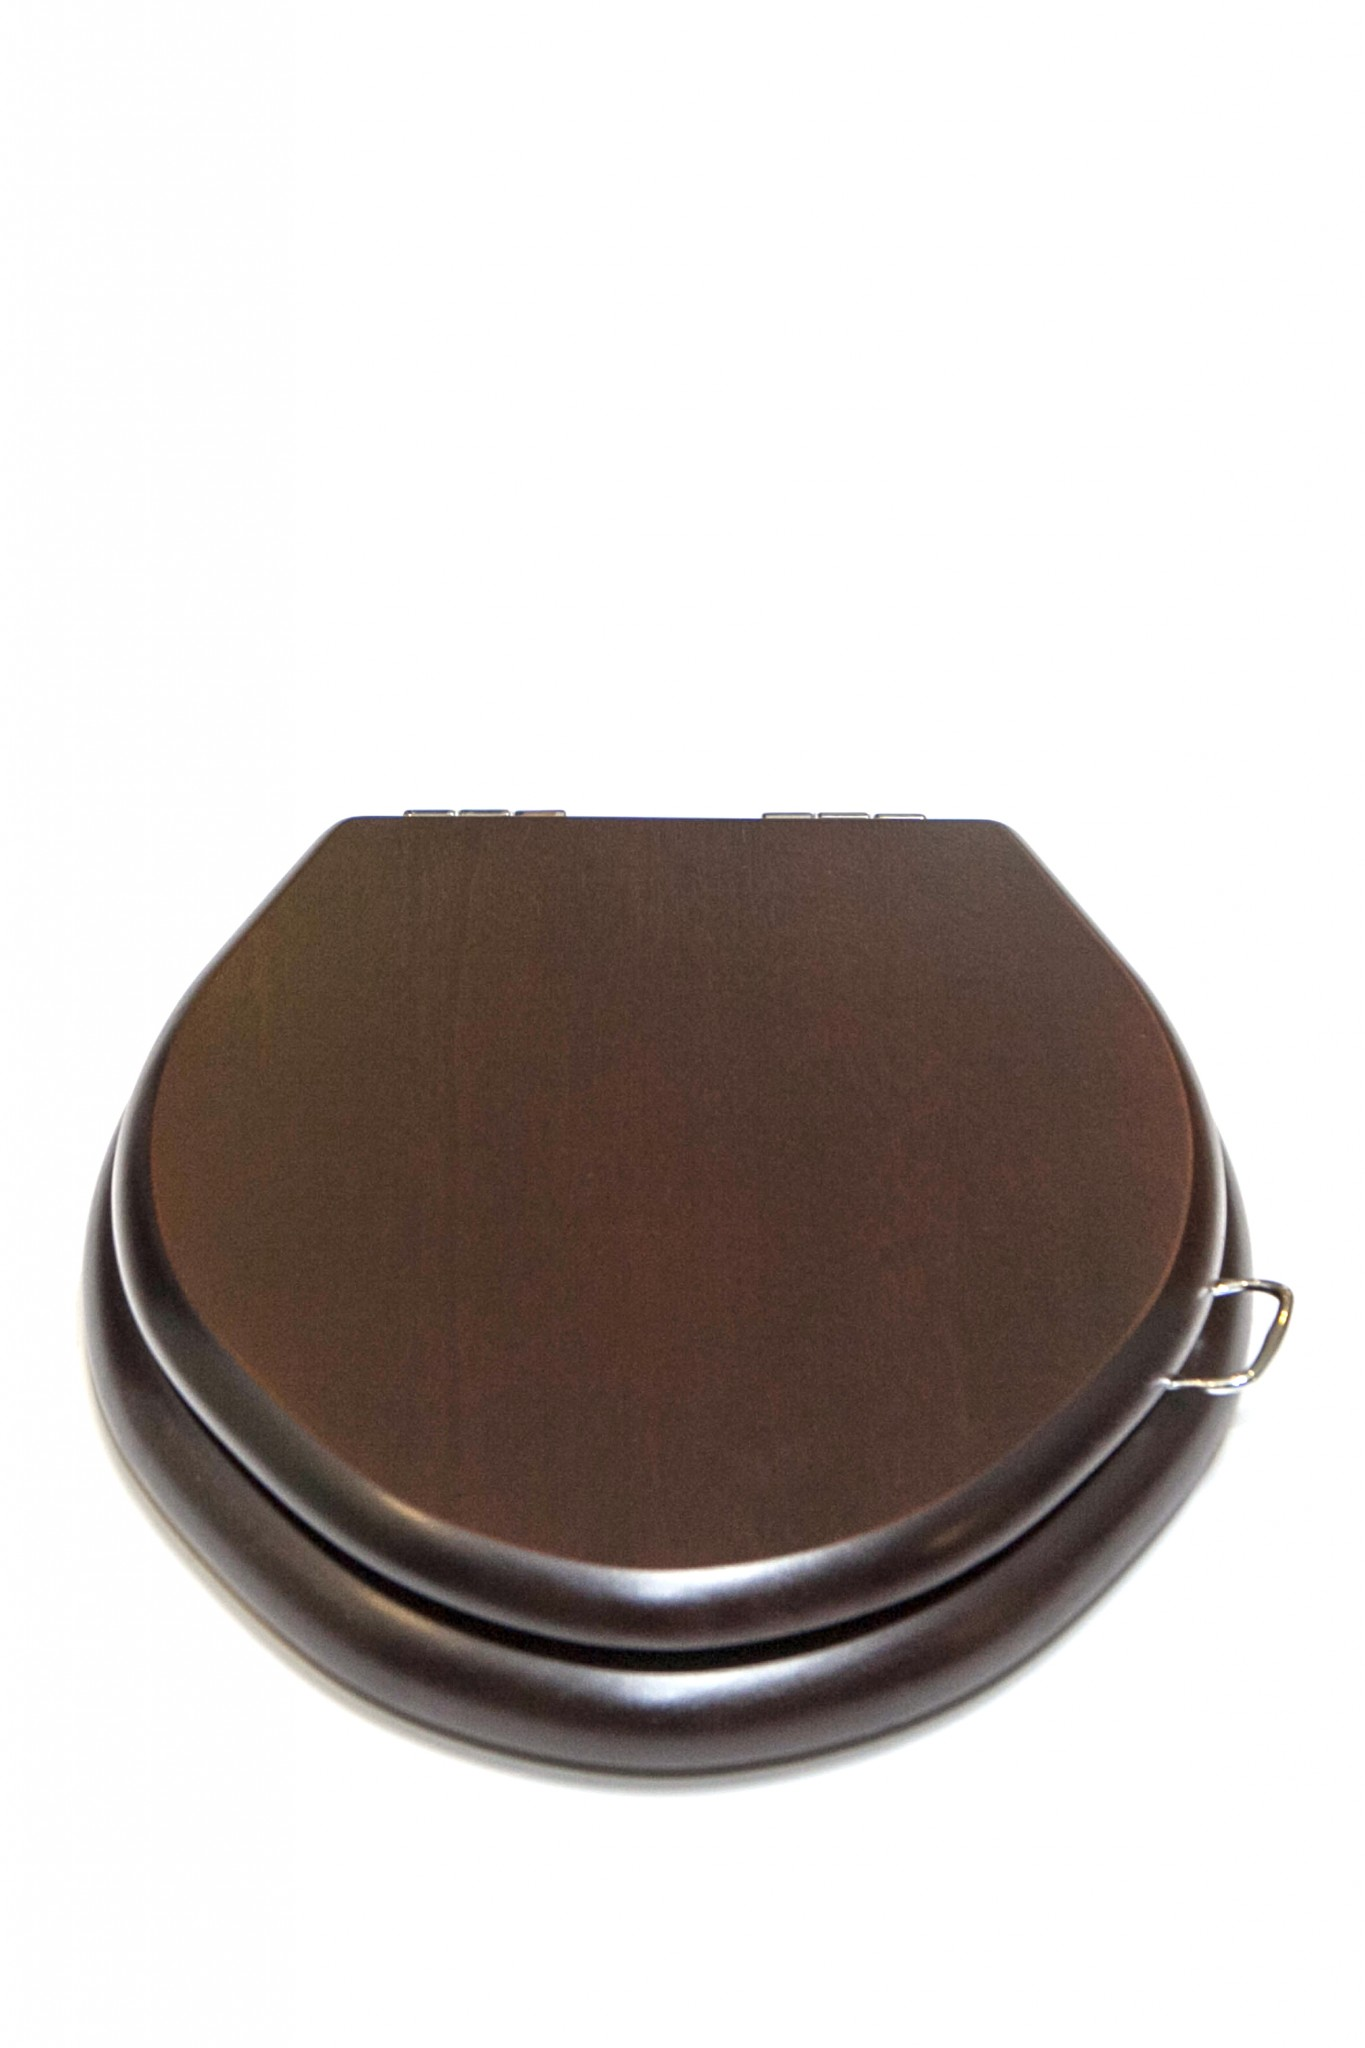 Wooden Toilet Seats Chadder Amp Co